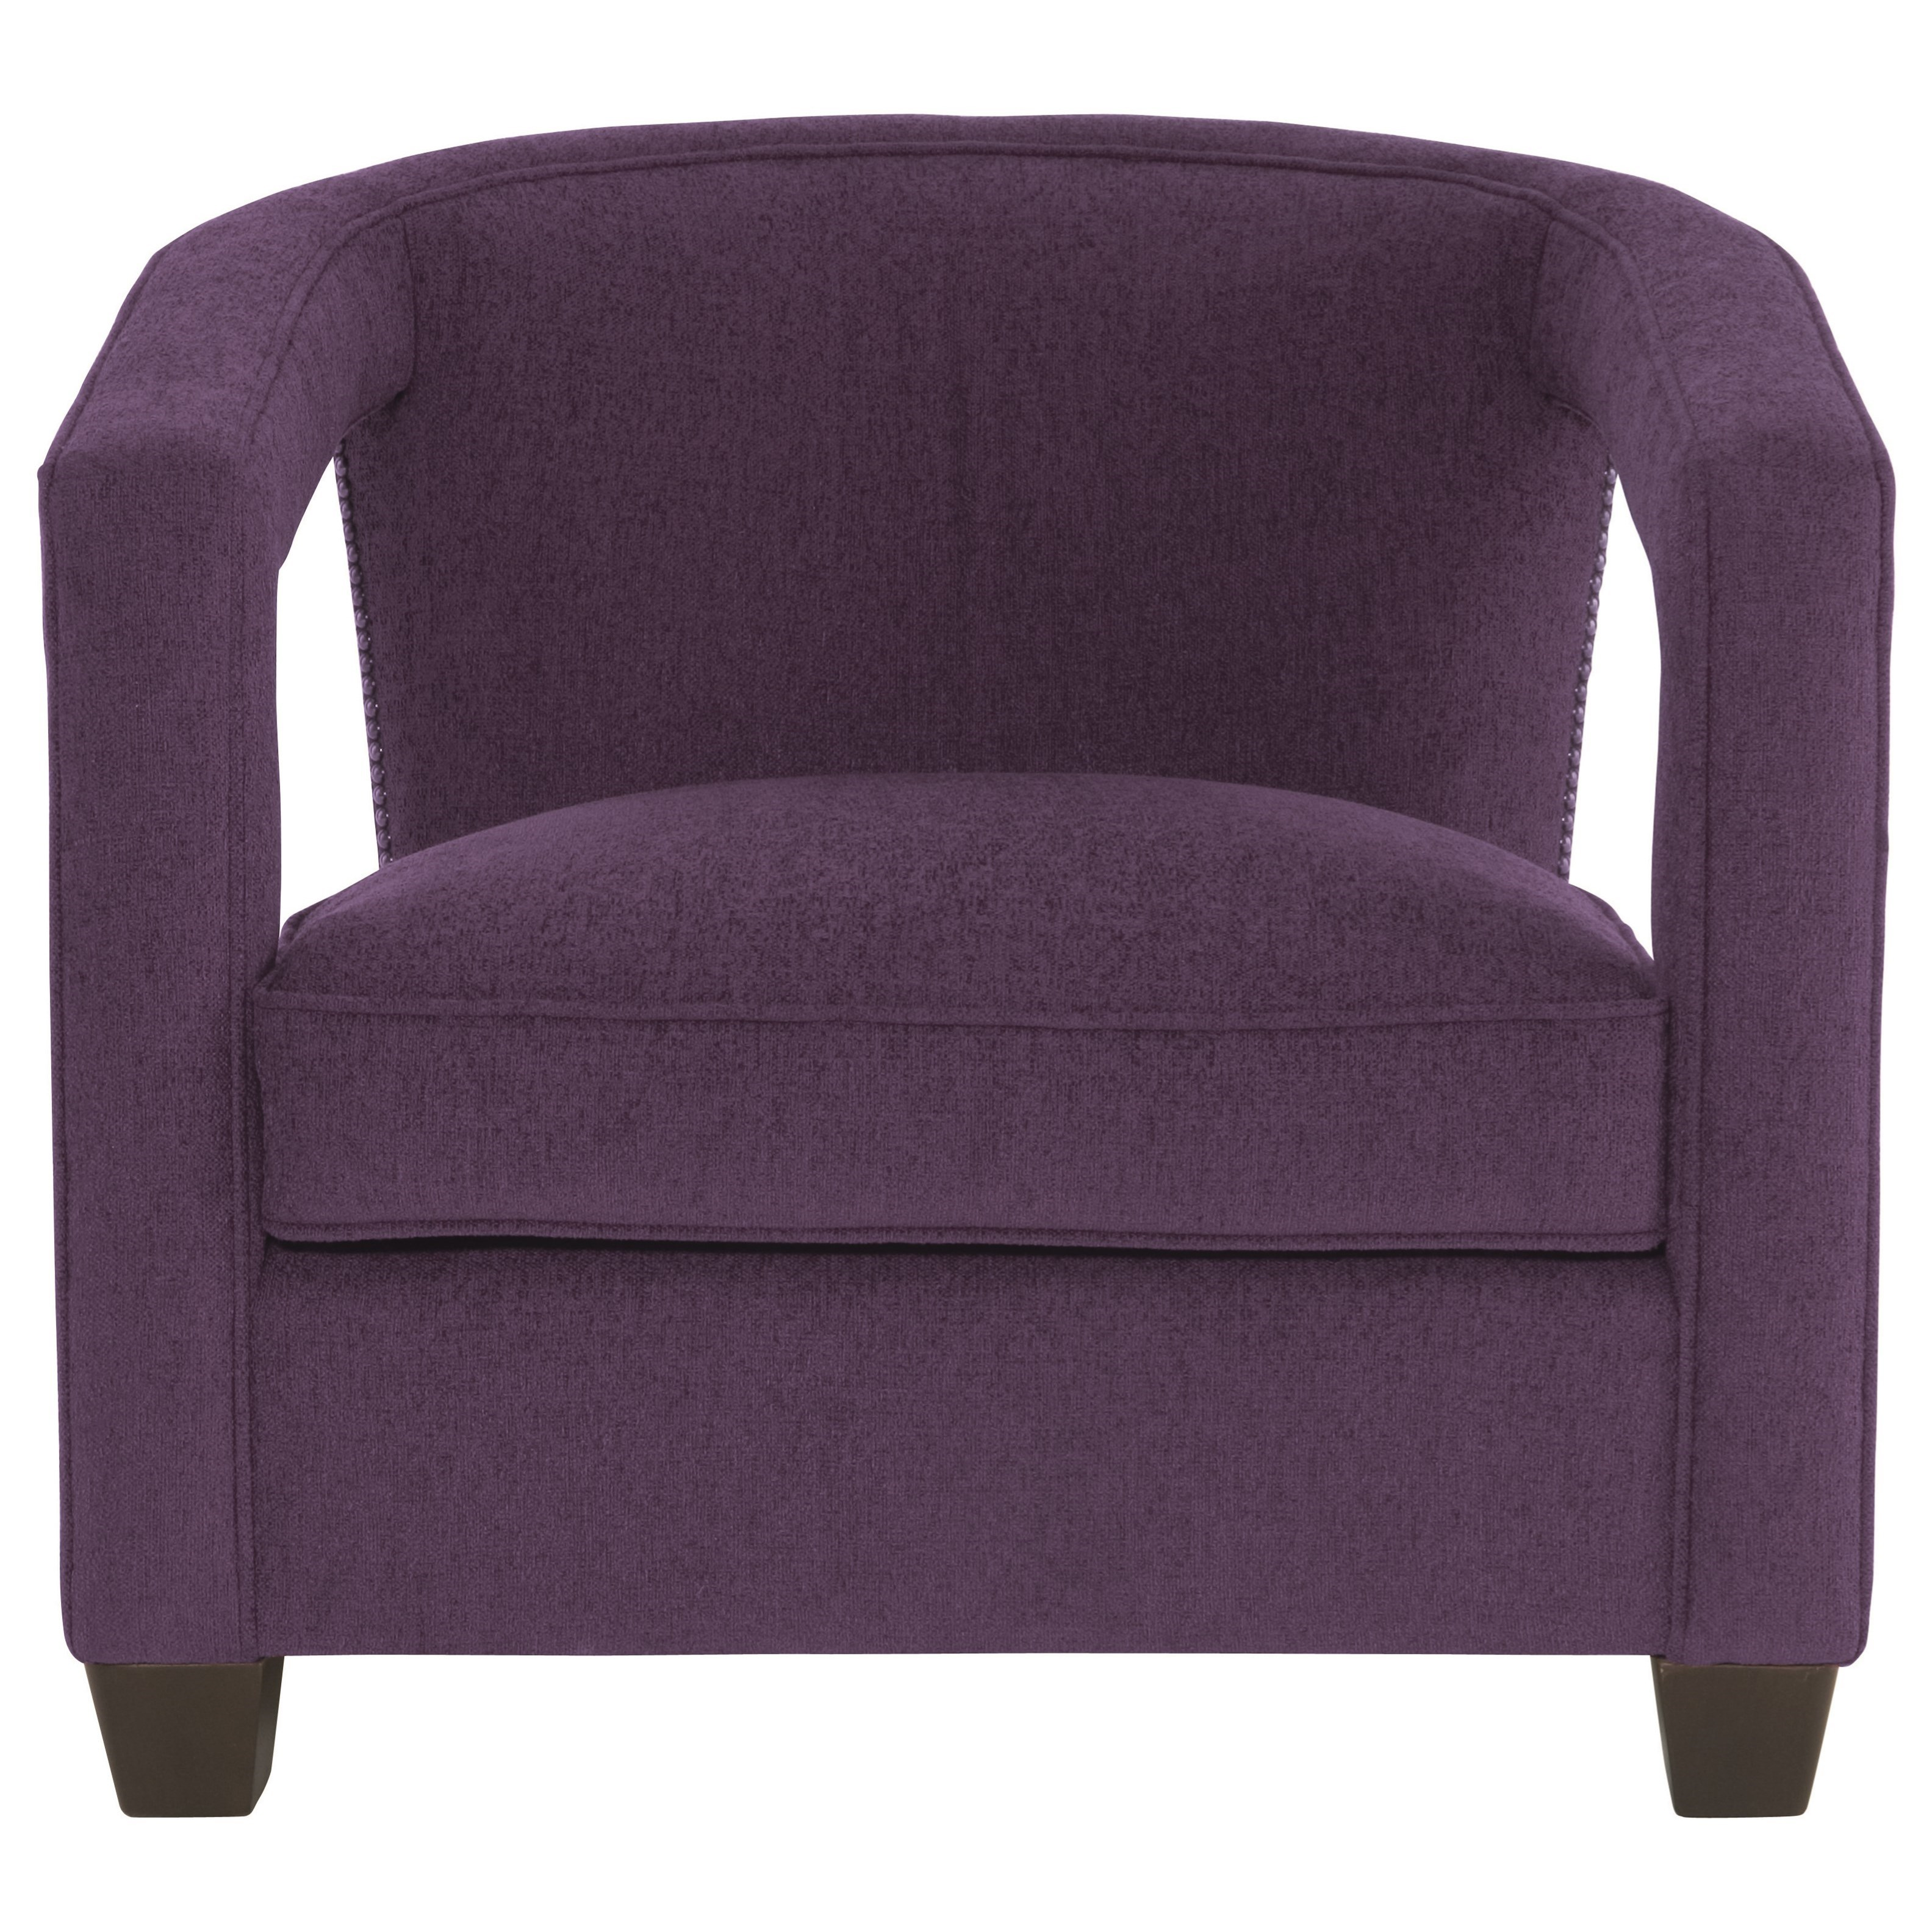 Alana Contemporary Chair with Nailheads at Williams & Kay